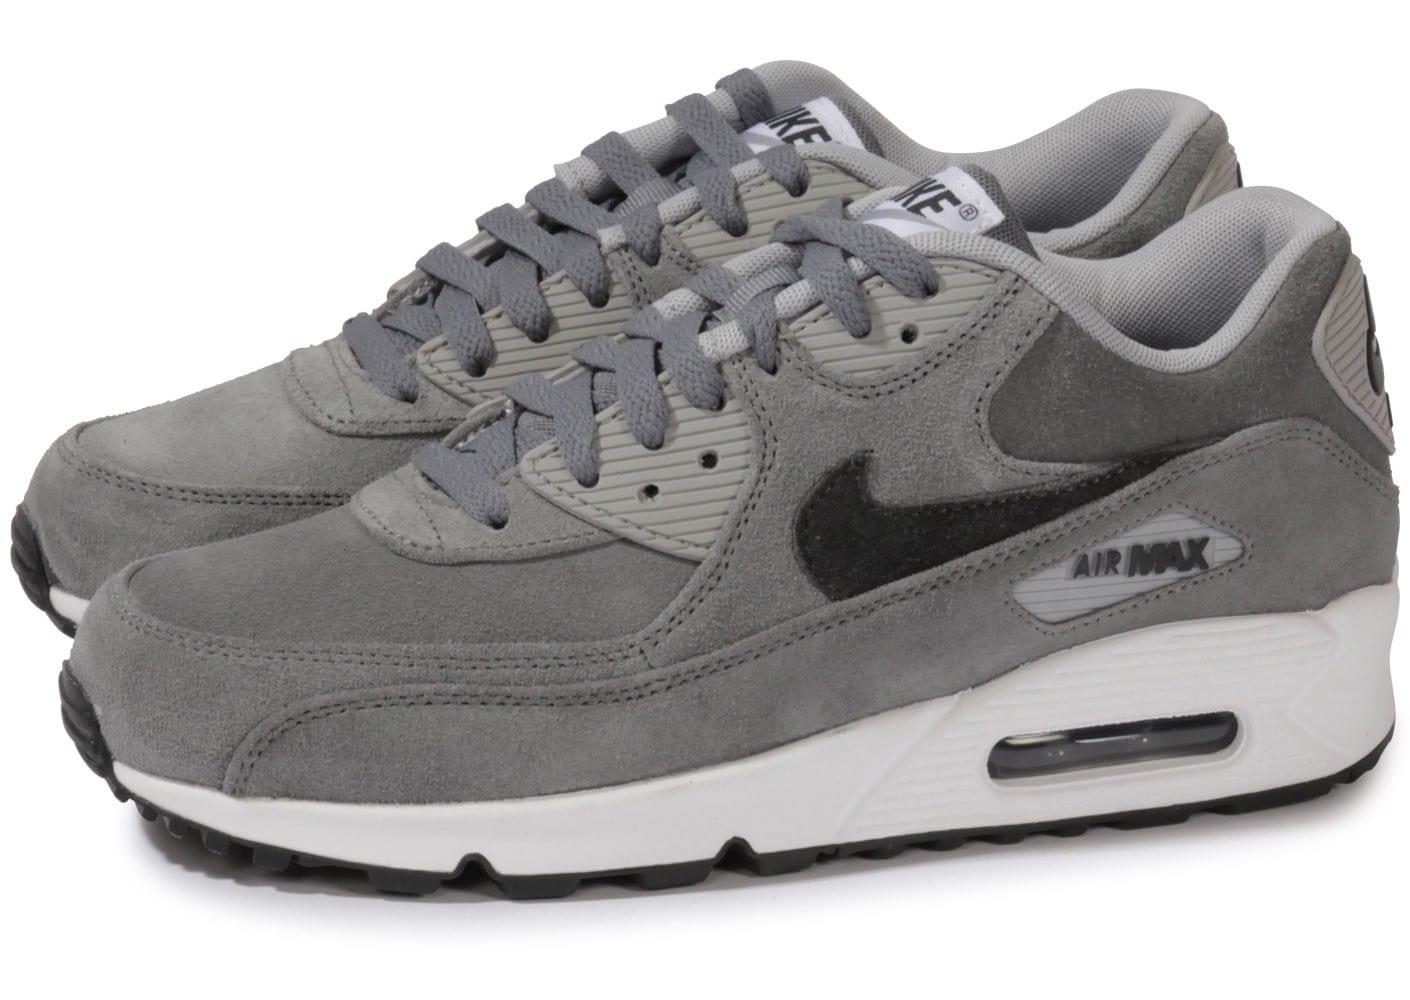 nike air max 90 leather premium grise chaussures homme chausport. Black Bedroom Furniture Sets. Home Design Ideas